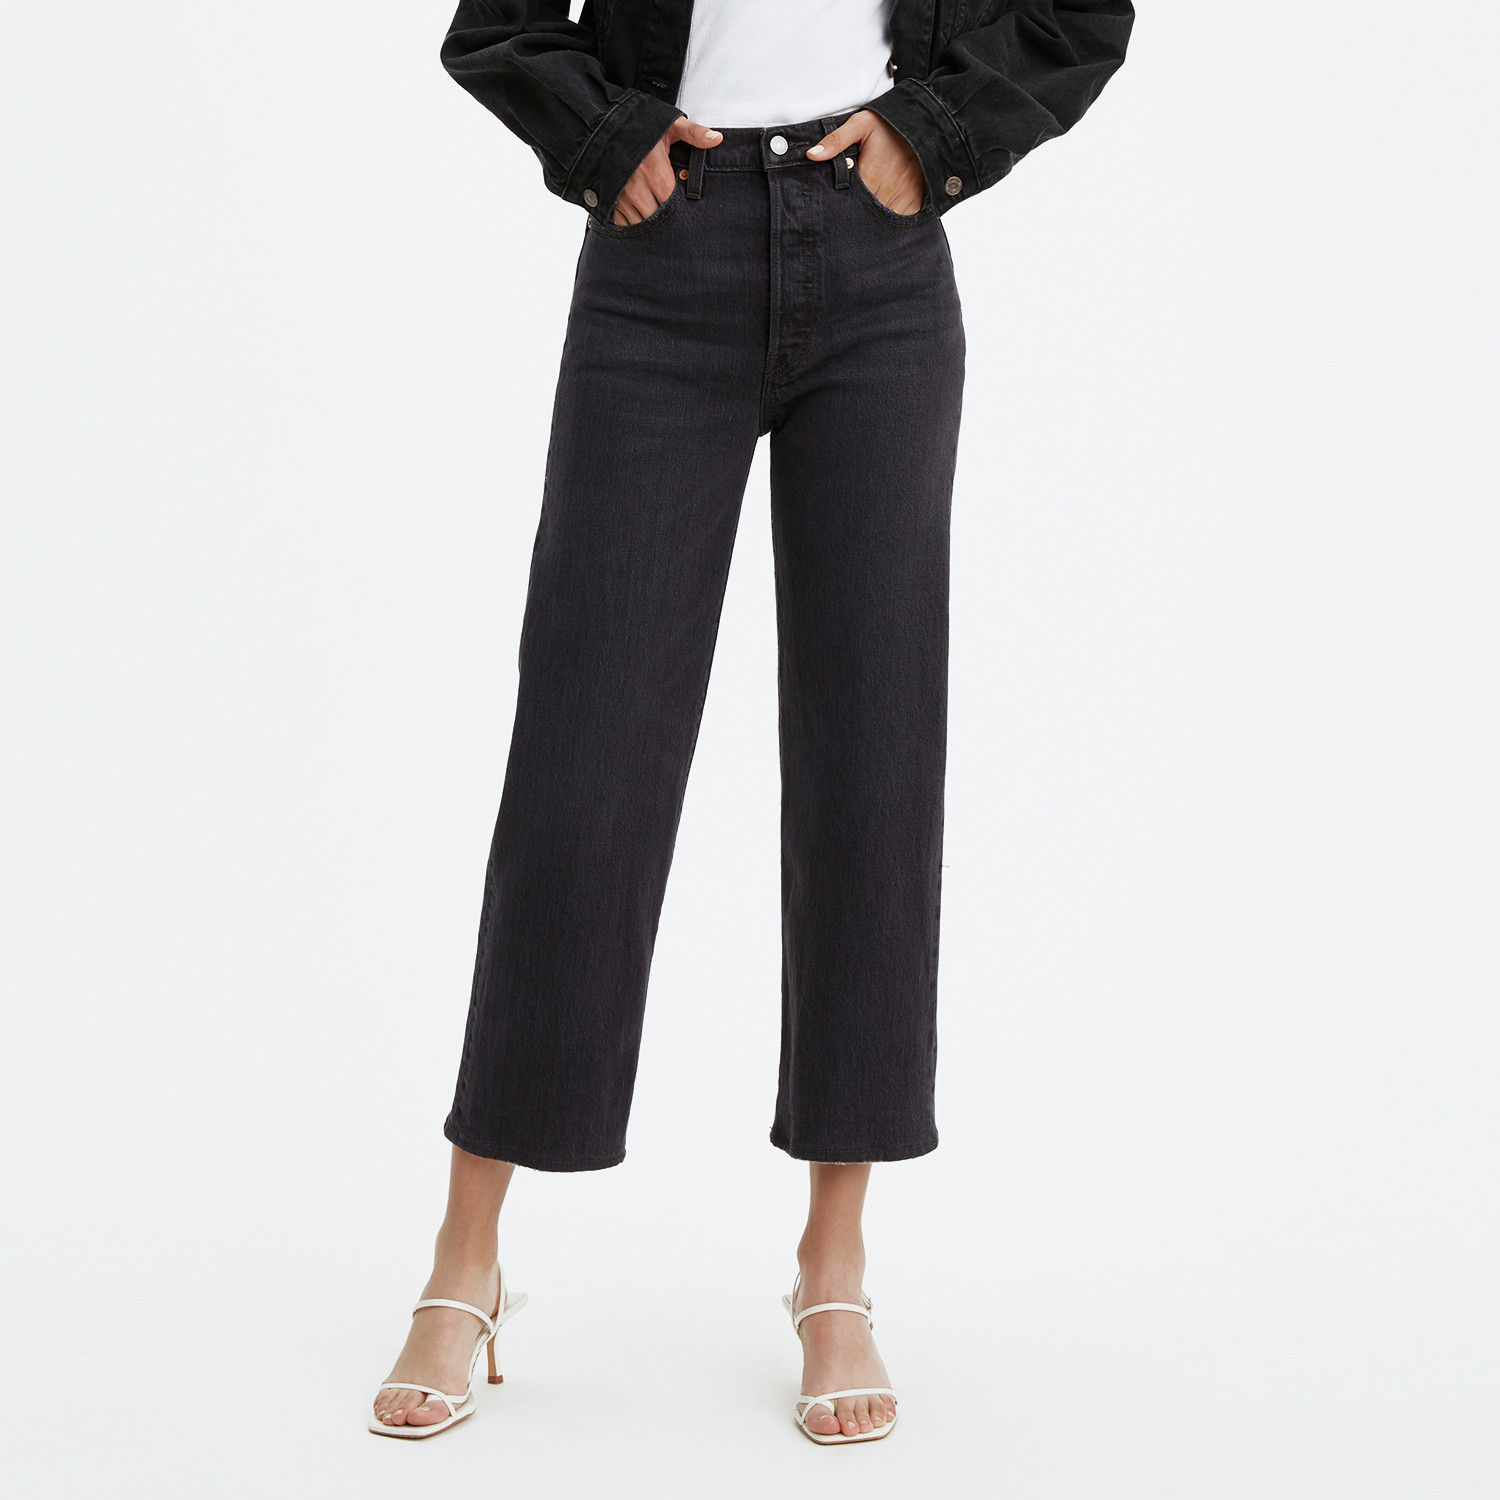 Levis Ribcage Straight Ankle Feelin Cagey (9000087149_26097)